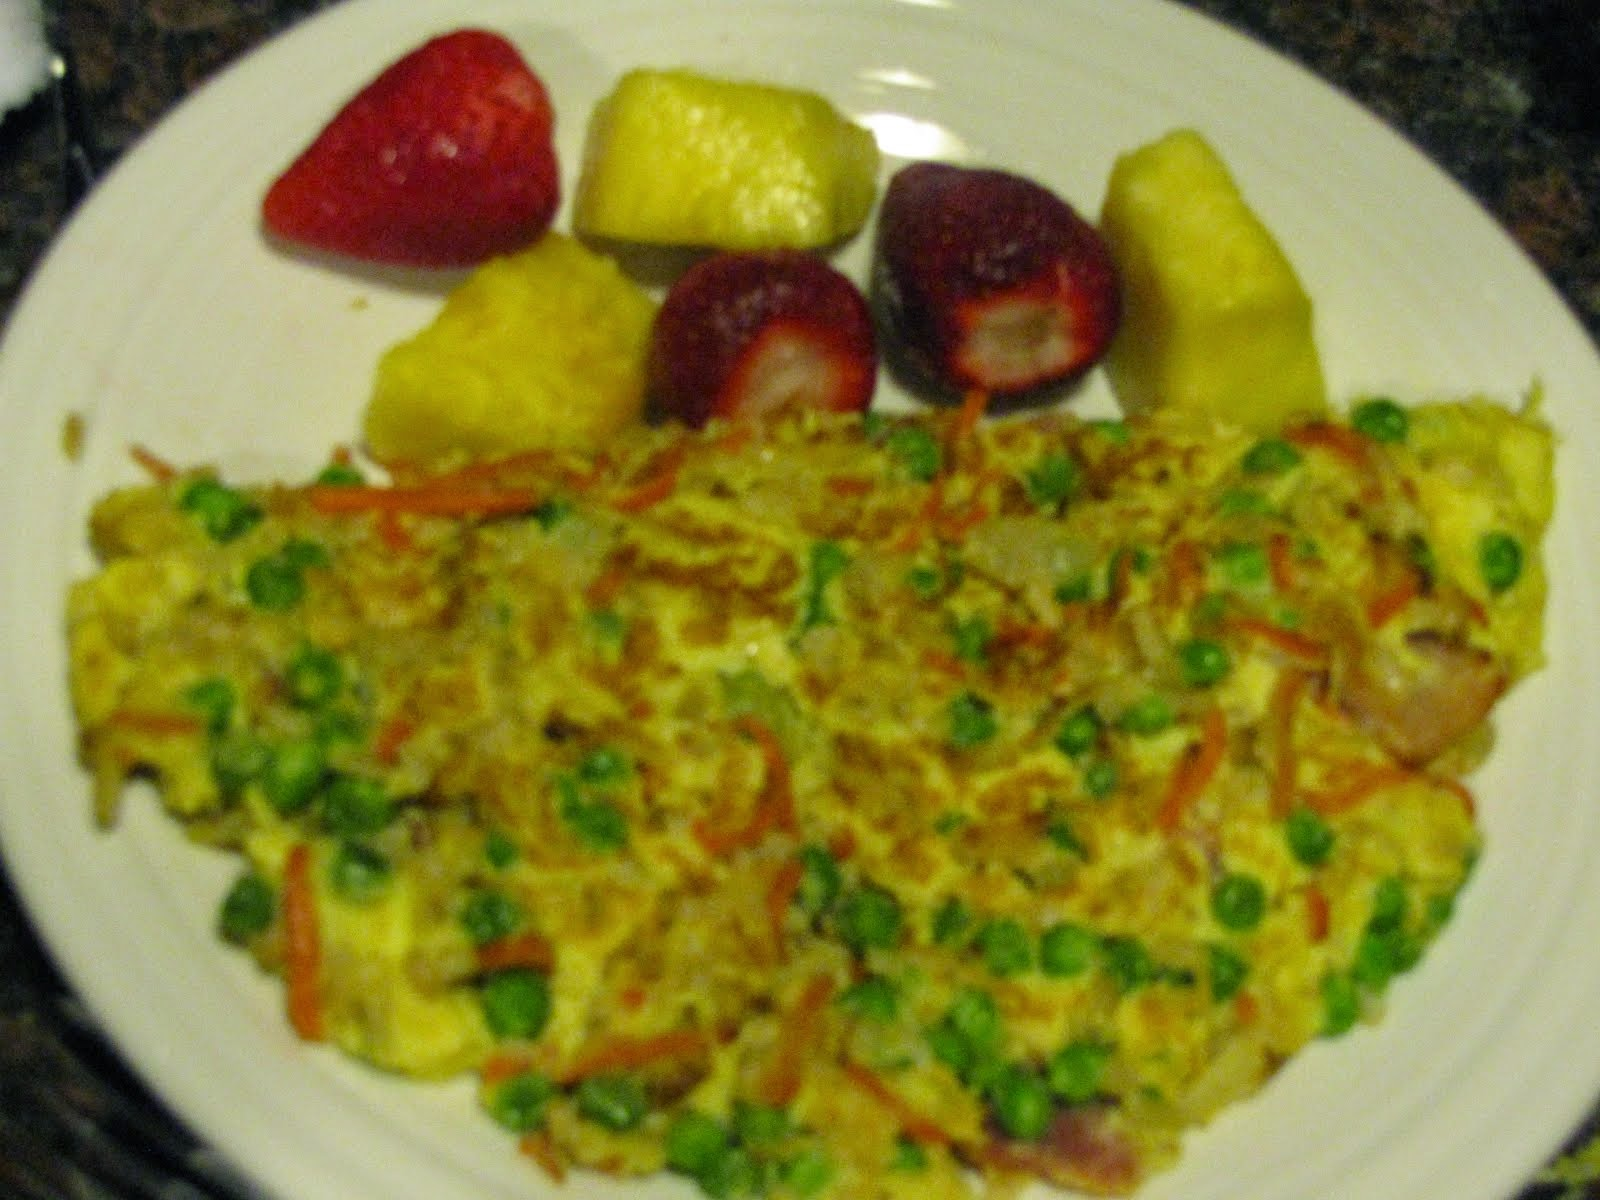 Omlet with Pineapple and Strawberries